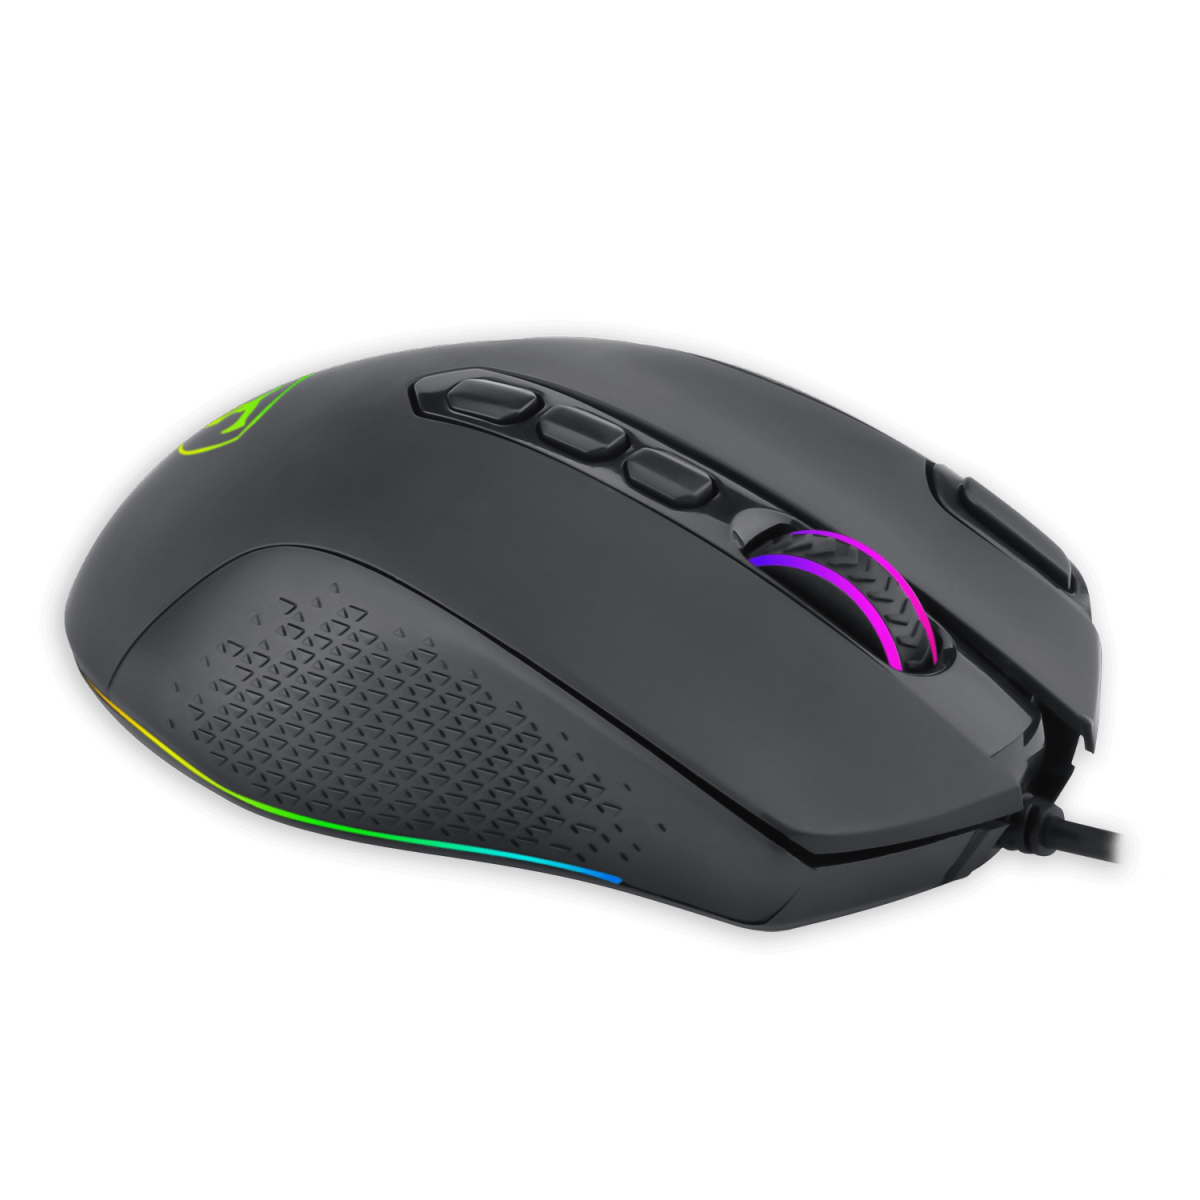 Mouse Gamer T-Dagger Bettle RGB, 8000 DPI, 10 Botões, Black, T-TGM305